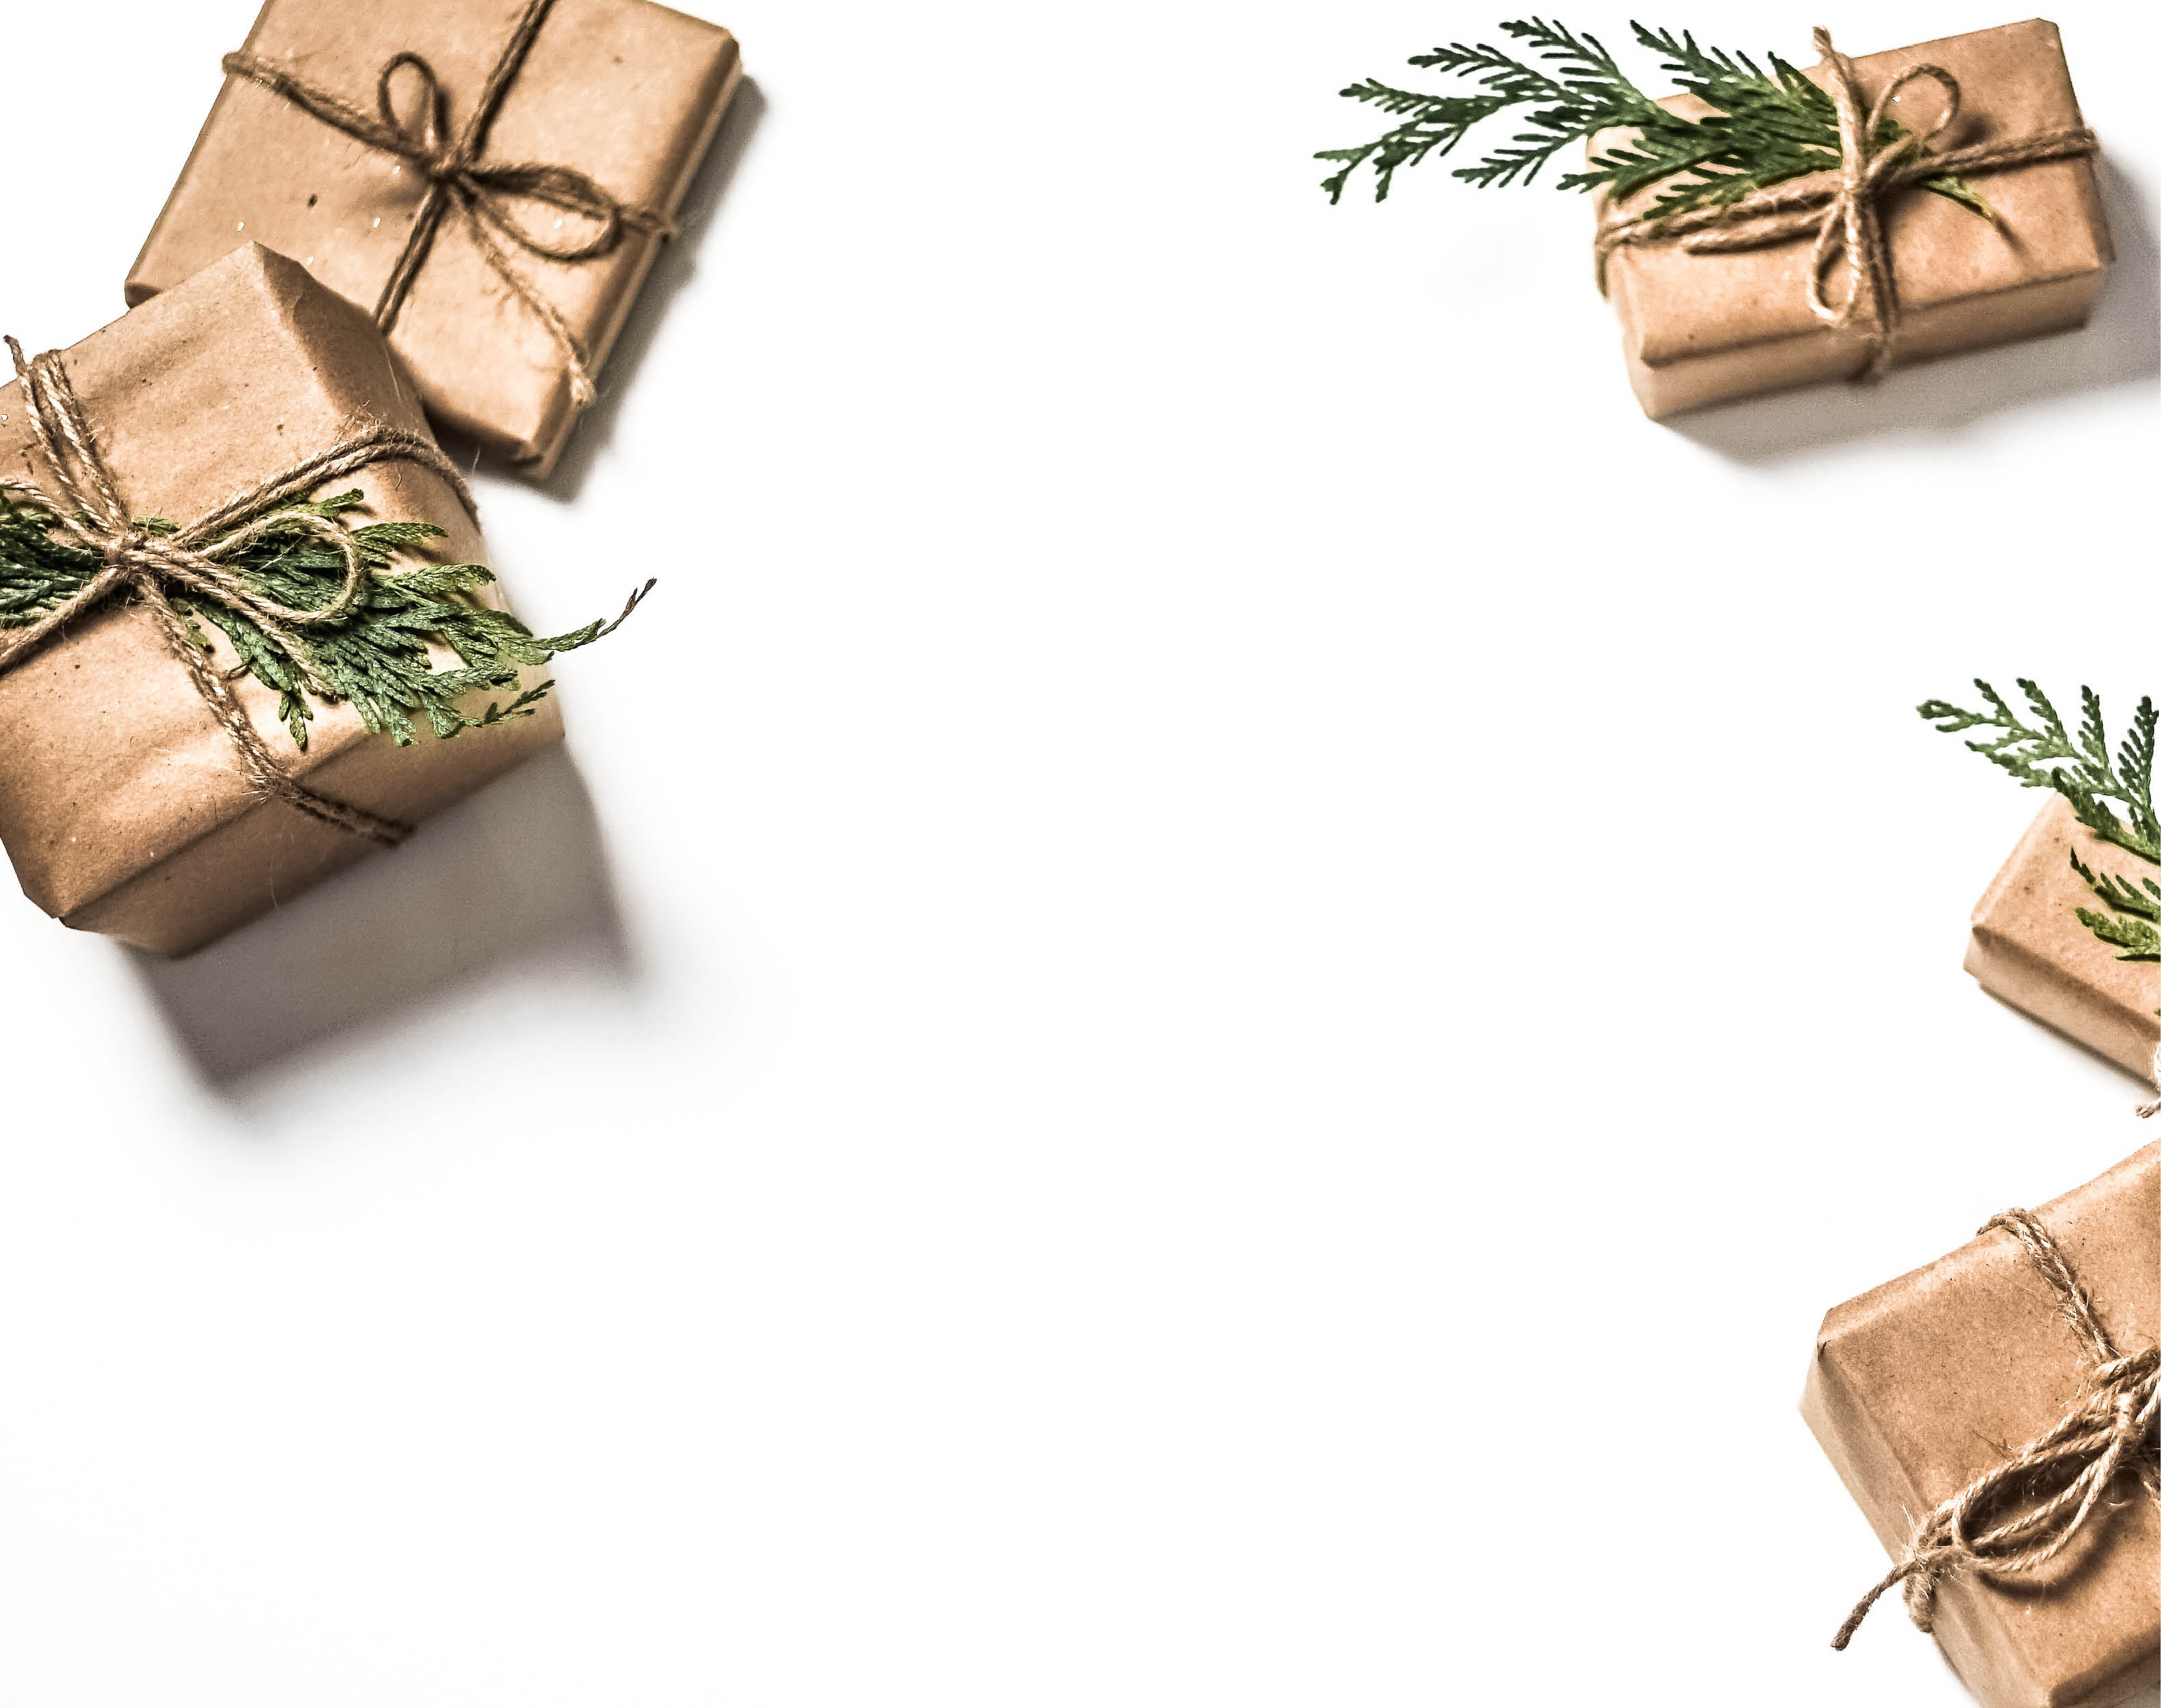 What to get folks who are hard to buy gifts for, part two – Garage